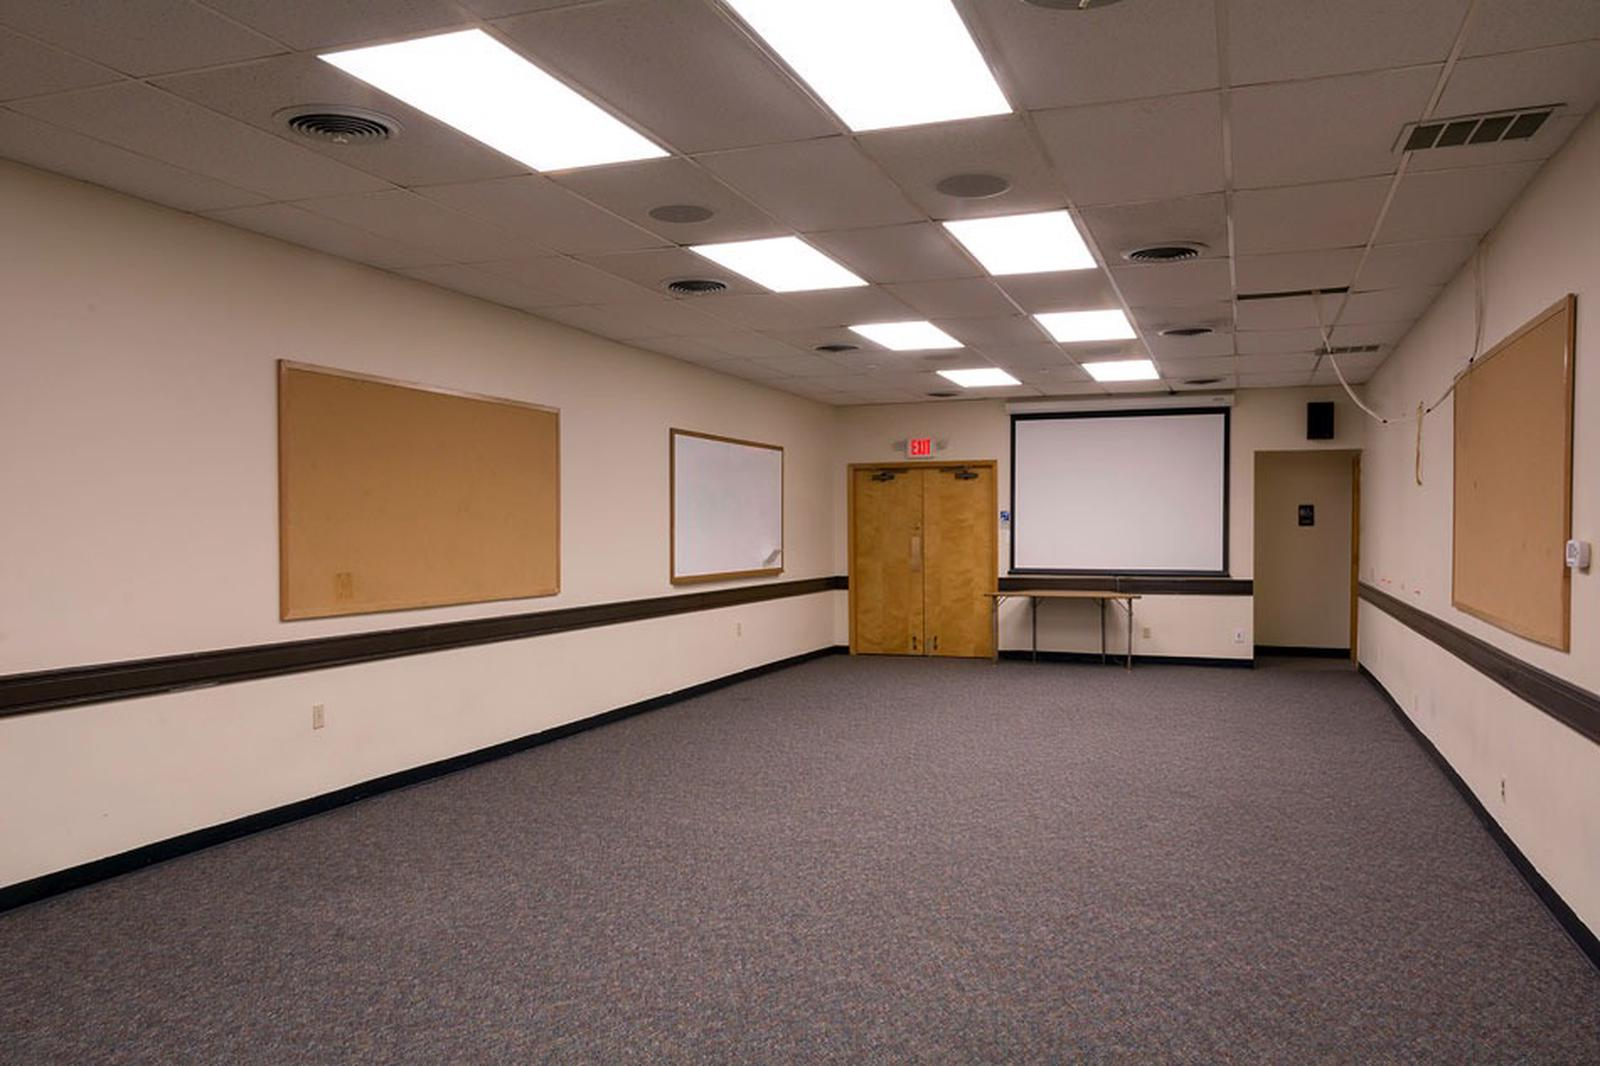 Interior view of the small conference room. Gray carpet flooring with 2 doors at the far end.  Ceiling mounted video screen on far end of room.The conference room is located inside the gym building and can accommodate 50 people. Chairs and 6 ft. tables are available in the adjacent storage room.